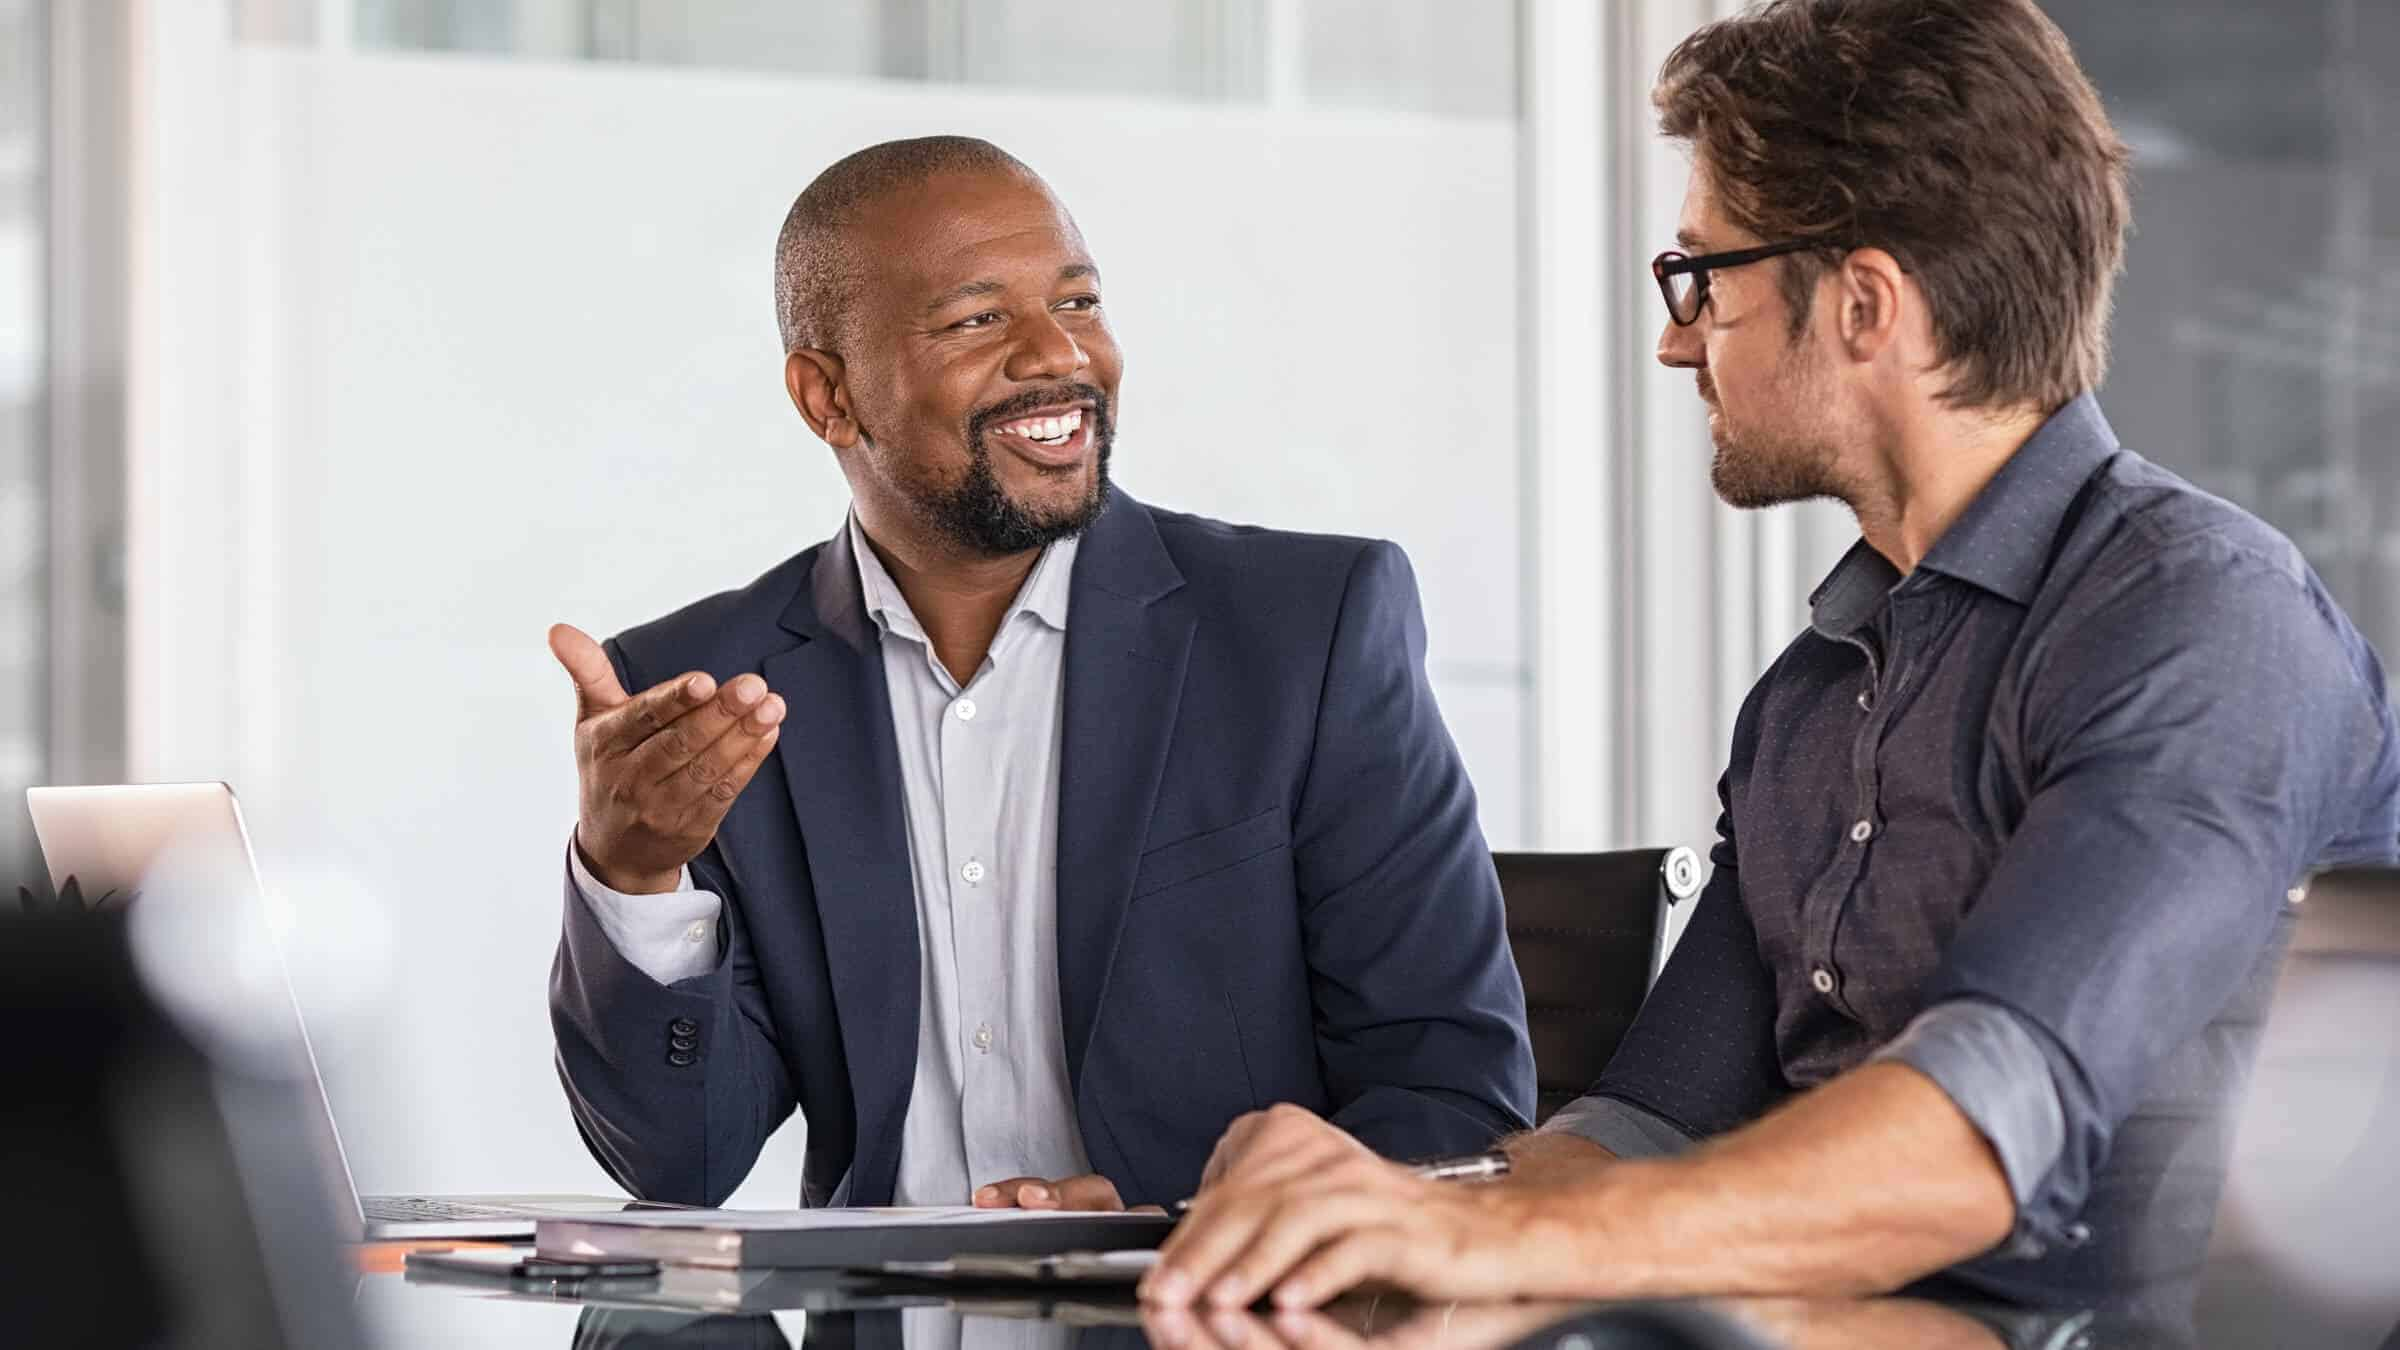 Two executives in a conversation: Advance your career through Regent's MBA, online or in Virginia Beach.